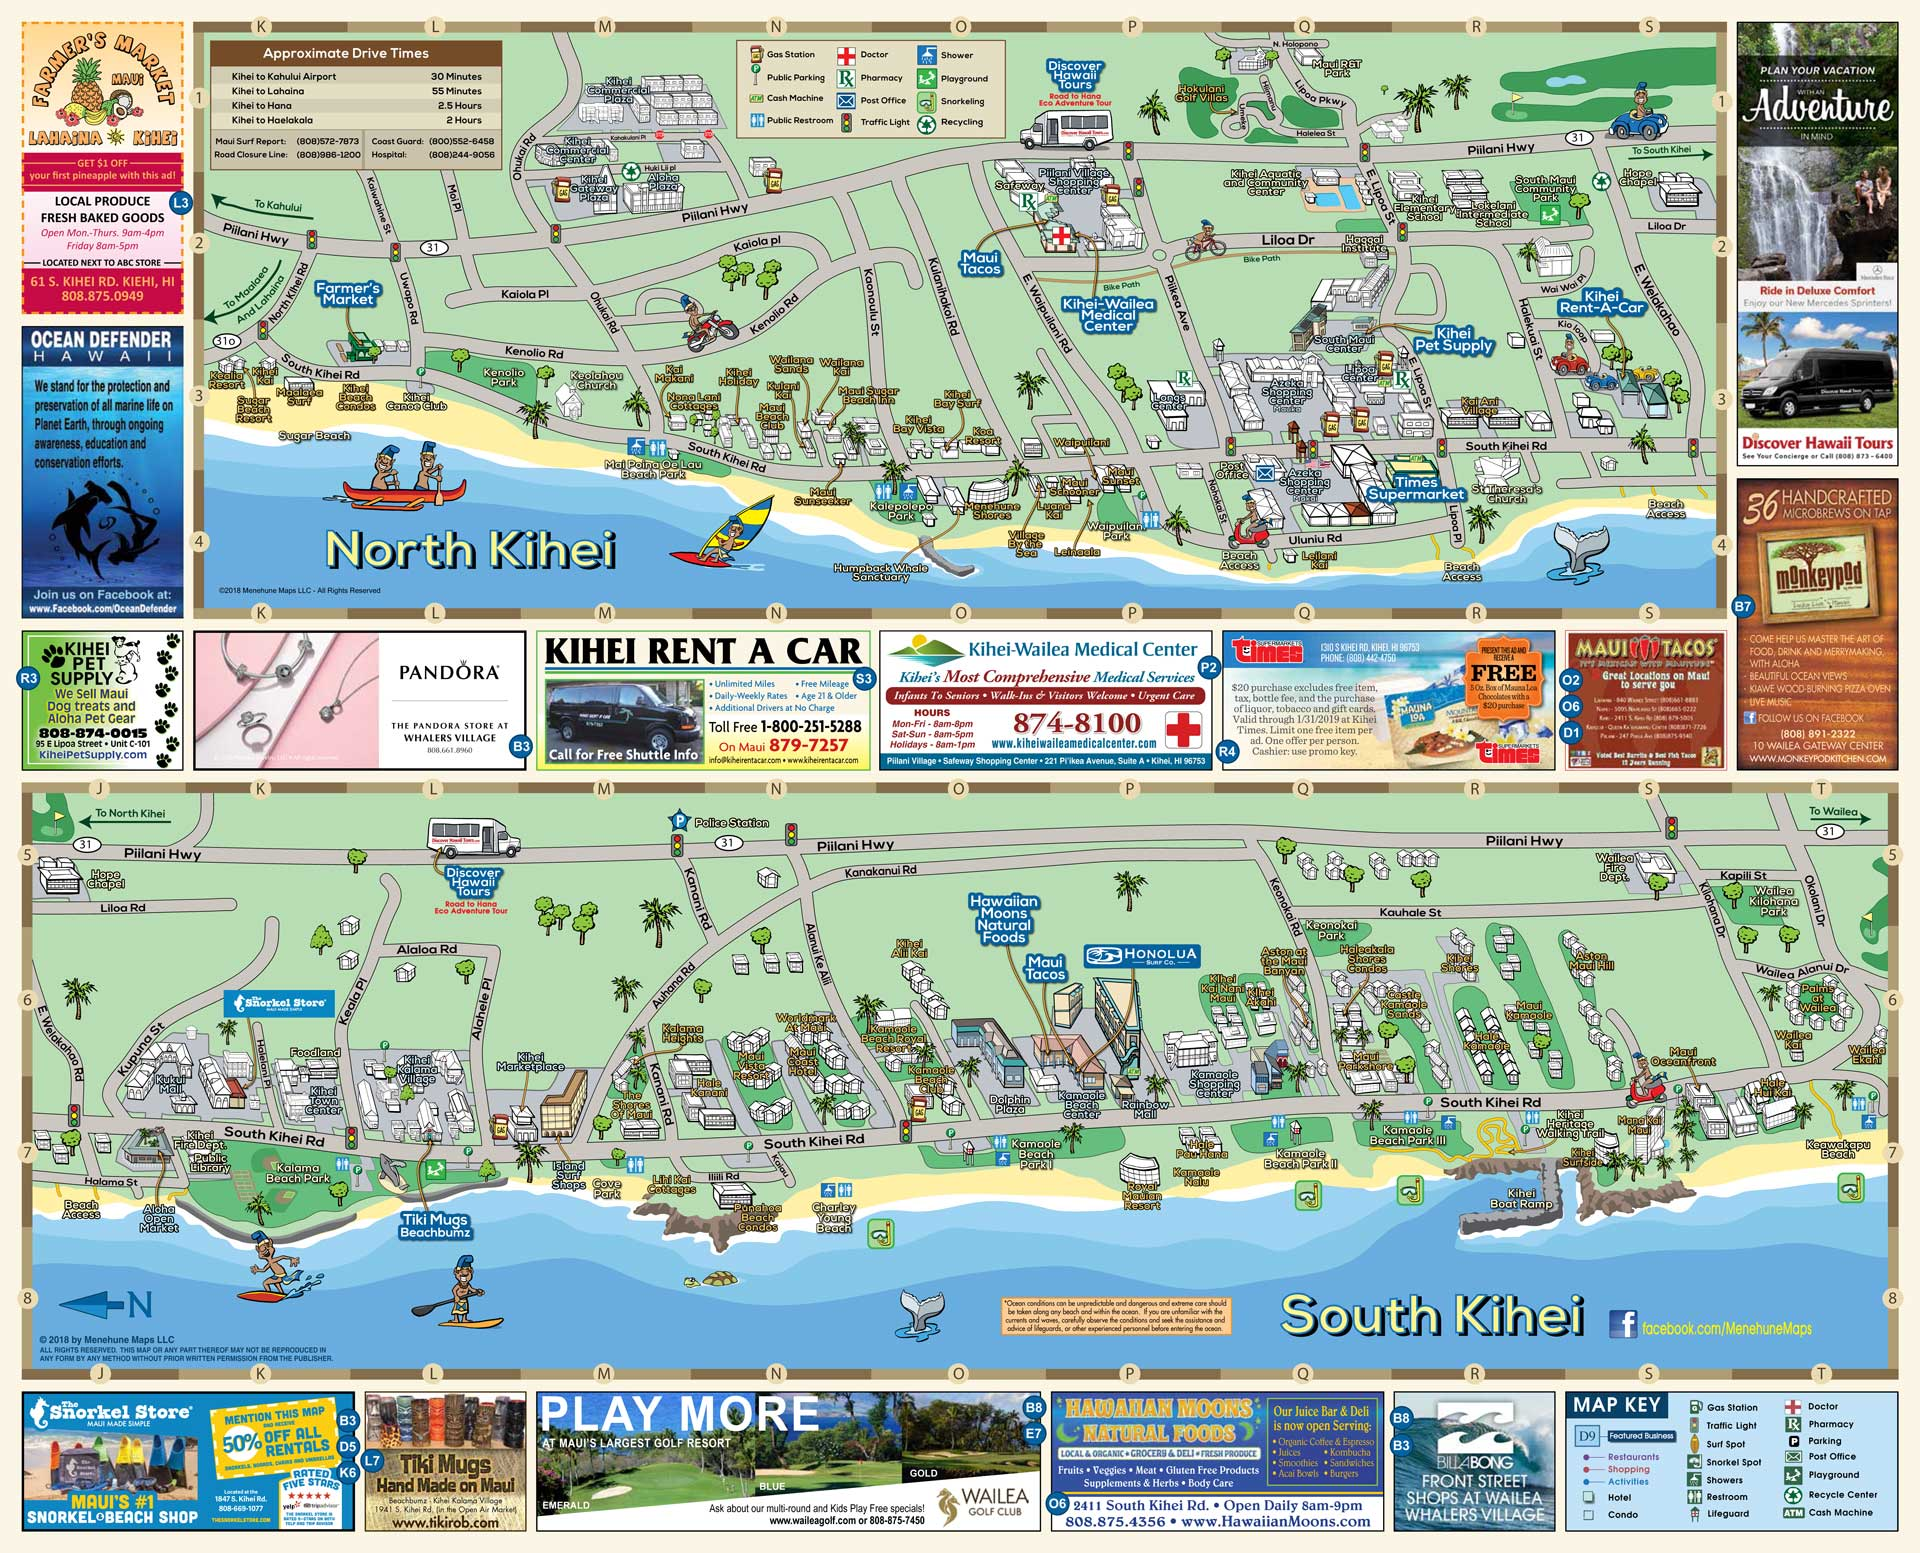 South Maui Map | Menehune Maps on map of cozumel, map of winnipeg hotels, map of holly hill, map of tampa beach, map of lake panasoffkee, map of overseas highway, map of wakulla, map of lower keys, map of cedar key area, map of dry tortugas, map of indian key, map florida, map of west columbia, map of orlando, map of fort lauderdale, map of little conch key, map of old orchard beach hotels, map of roanoke, map of big coppitt key, map of virginia key,